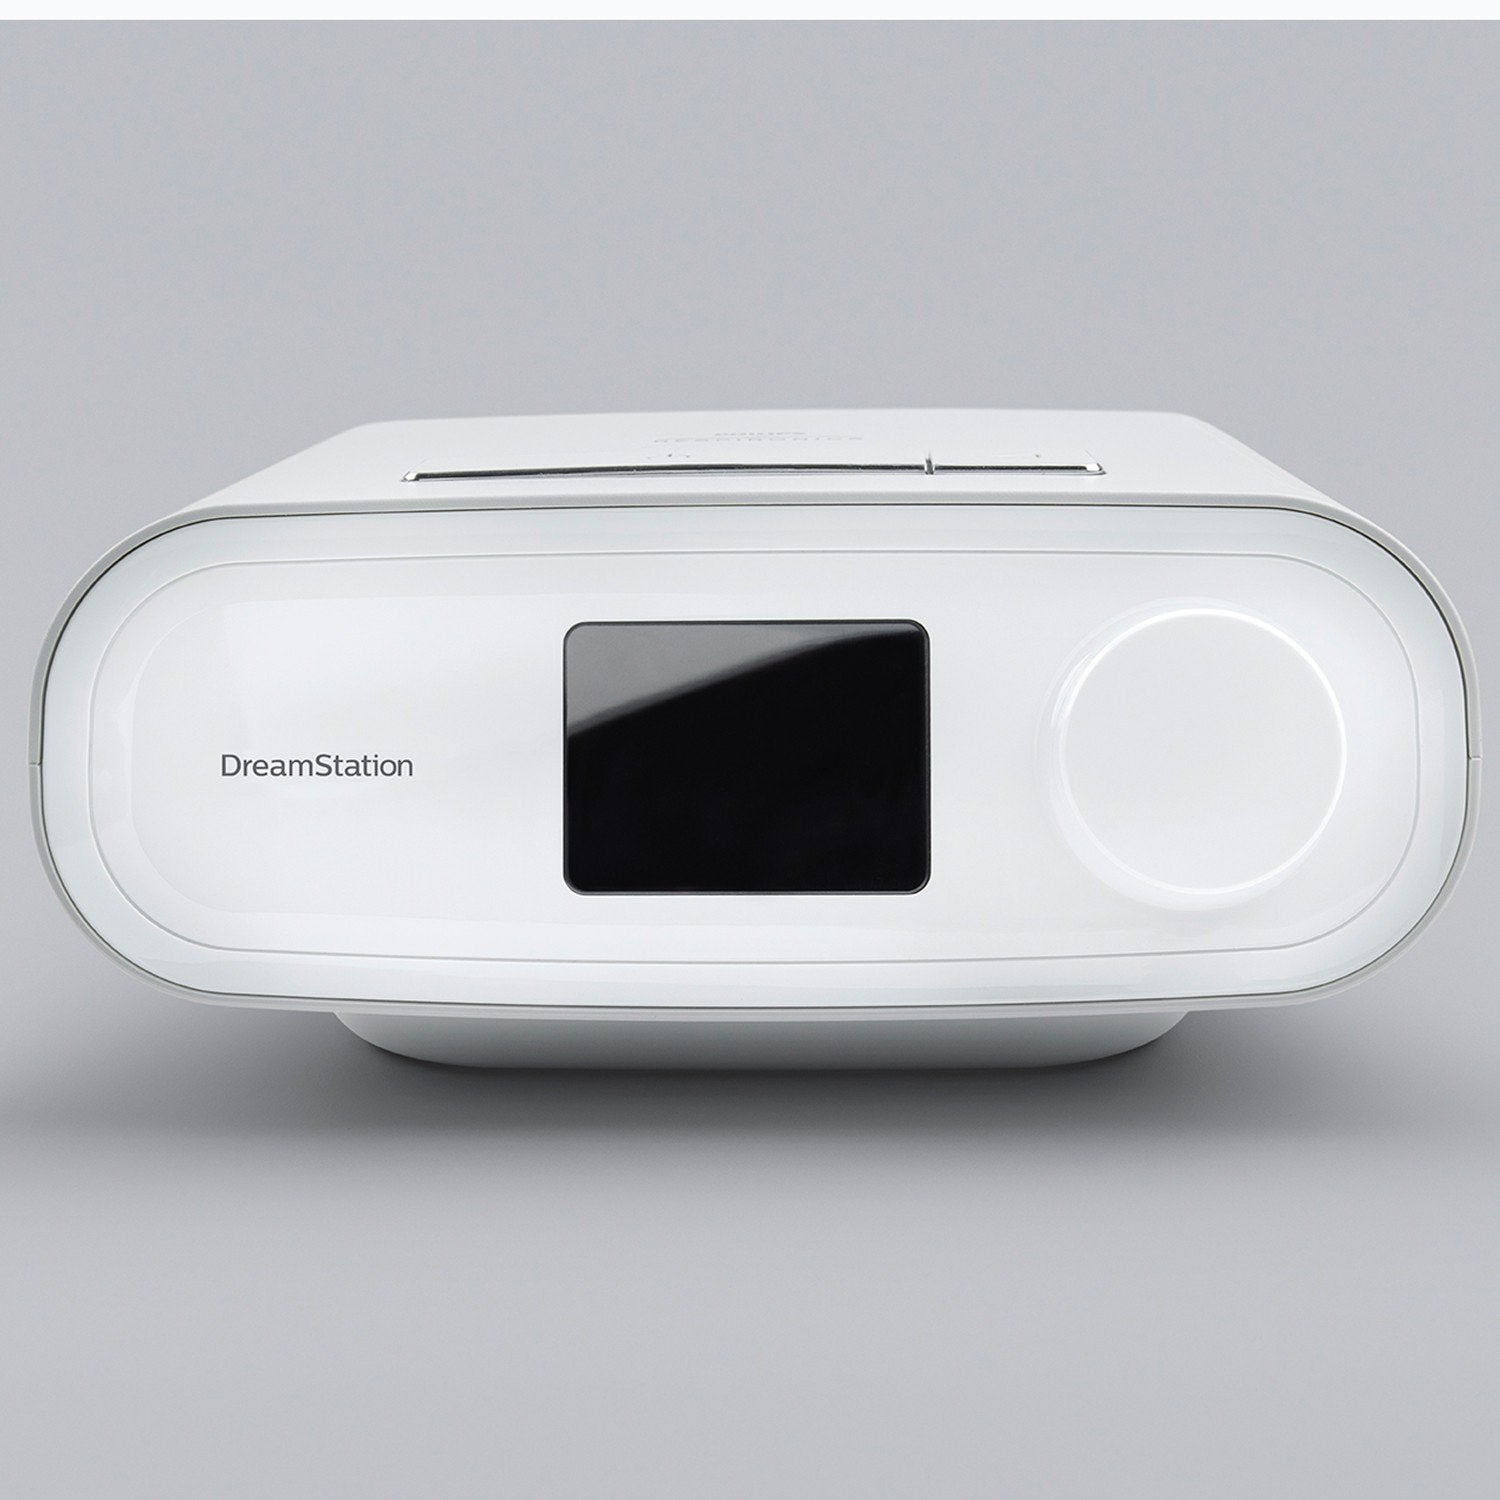 DreamStation APAP by Philips Respironics with Heated